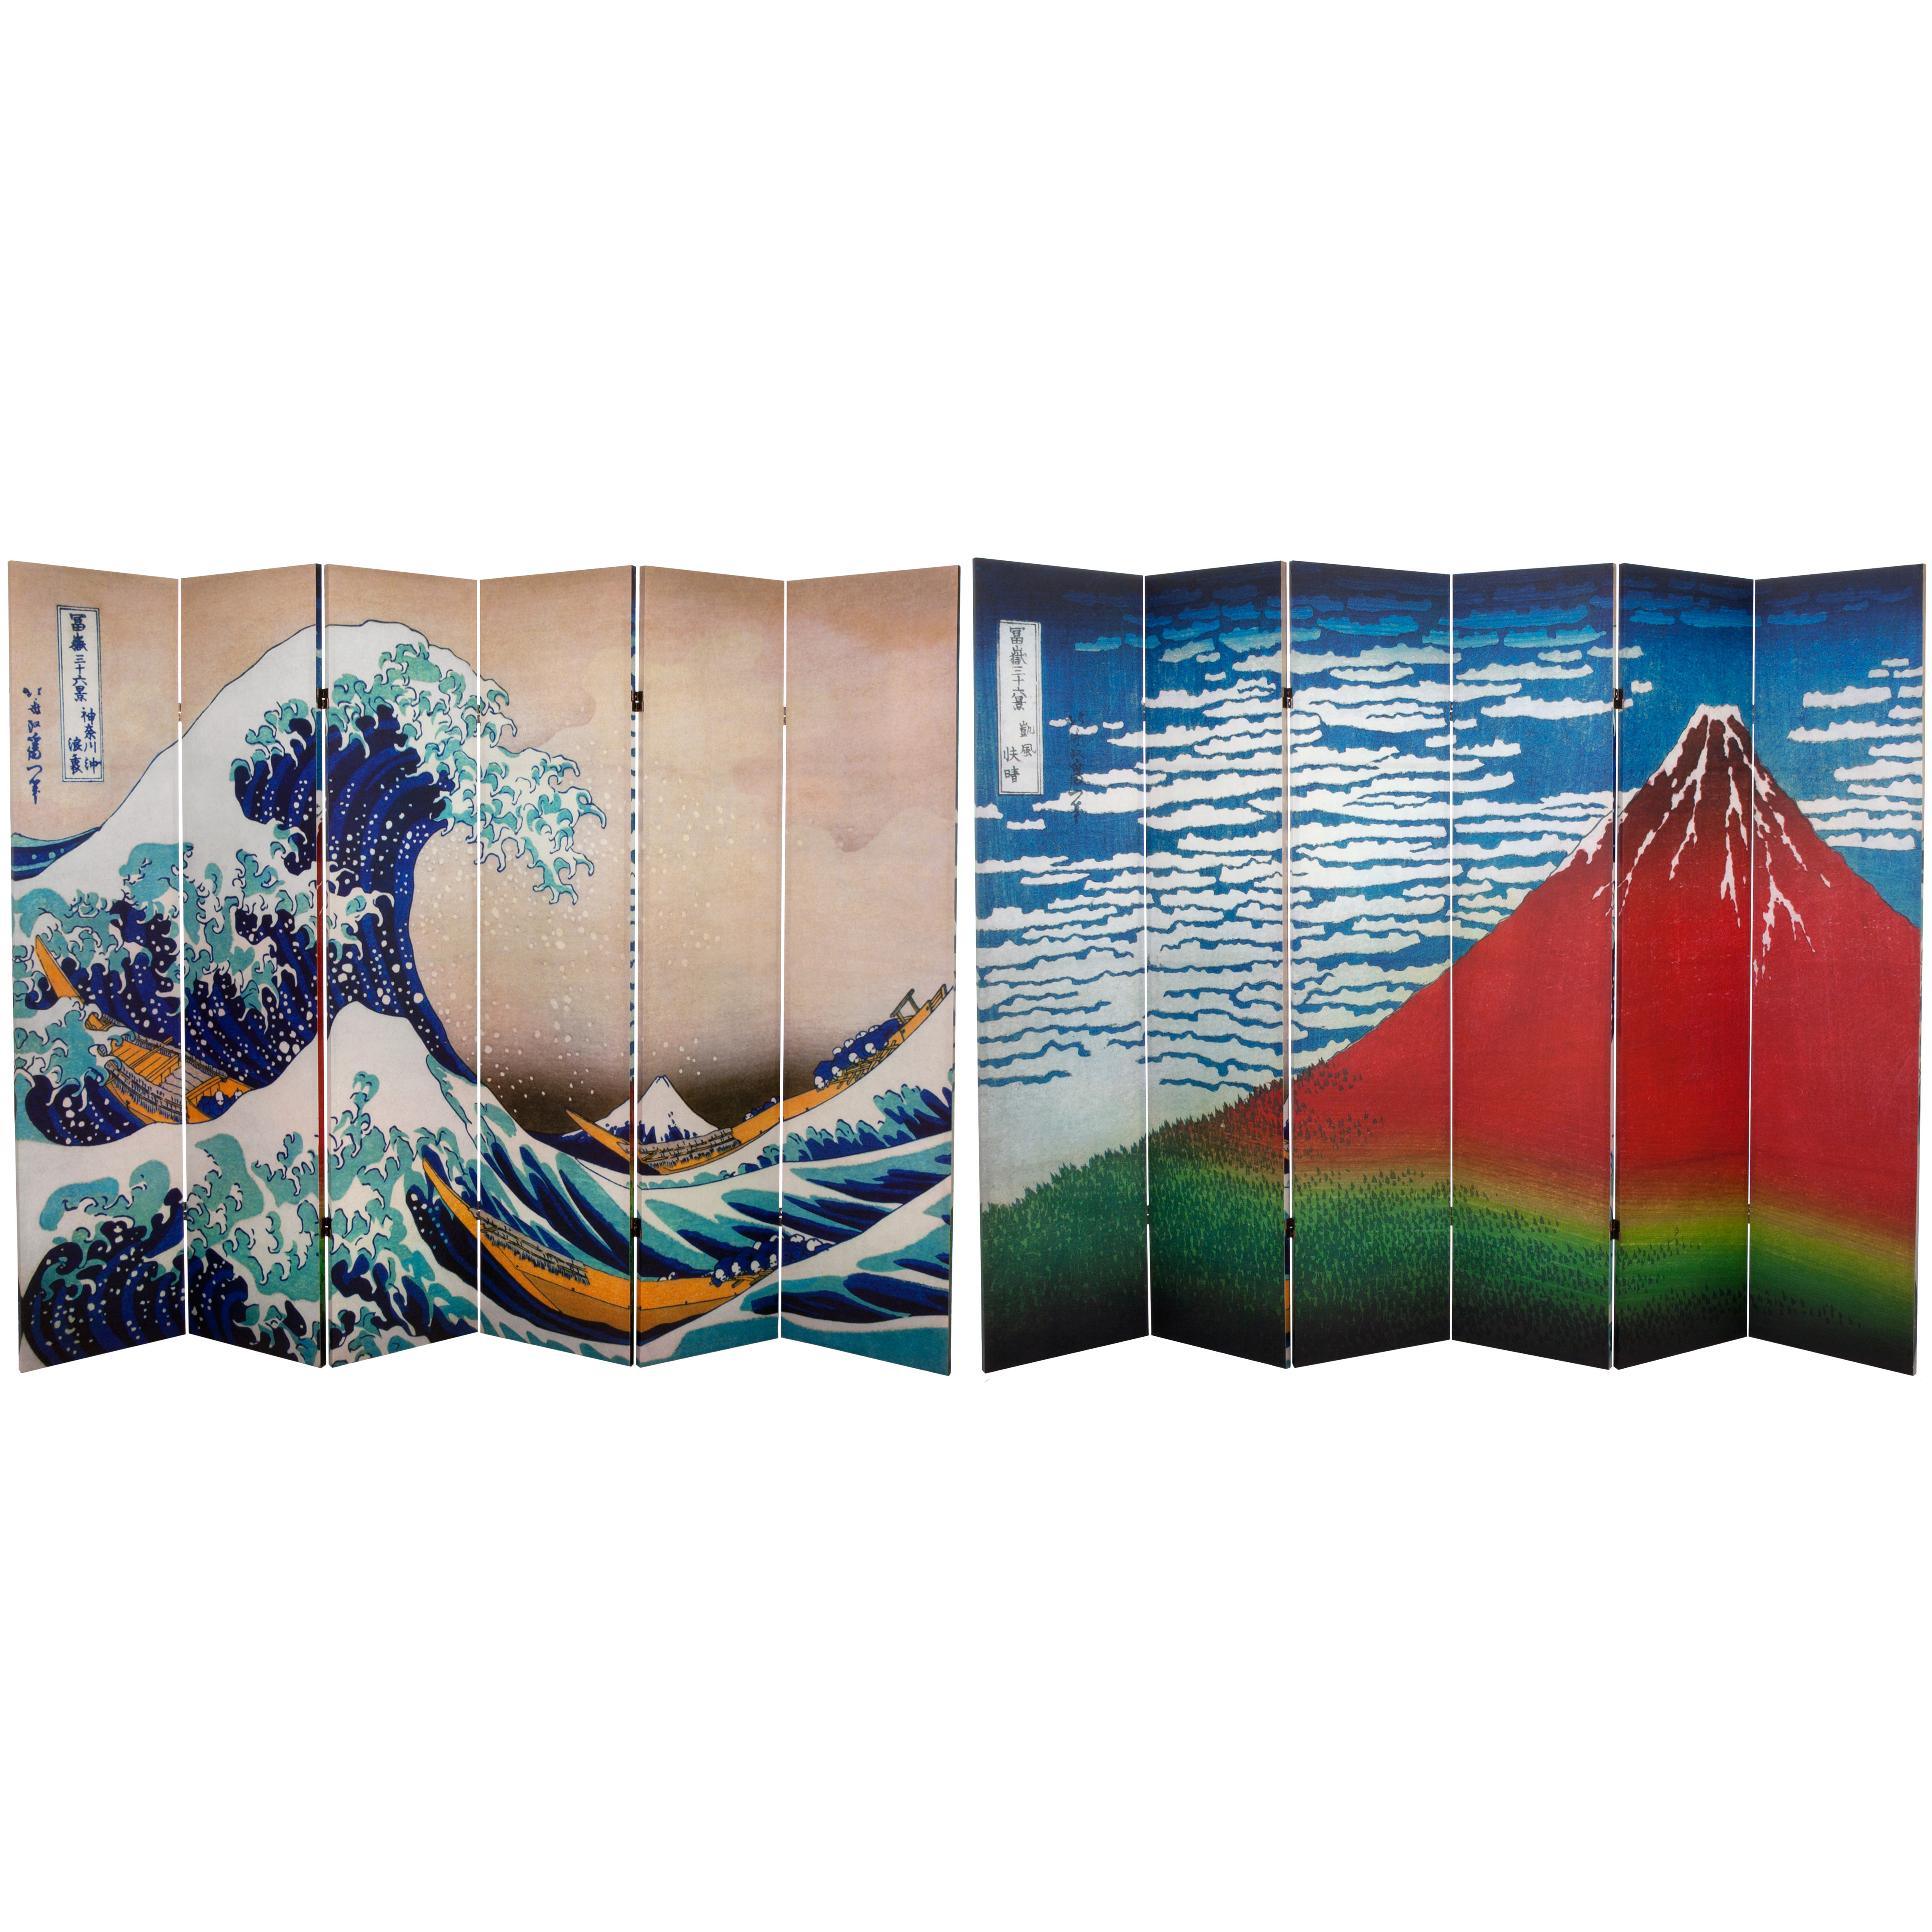 Buy 6 Ft Tall Double Sided Hokusai Room Divider Great